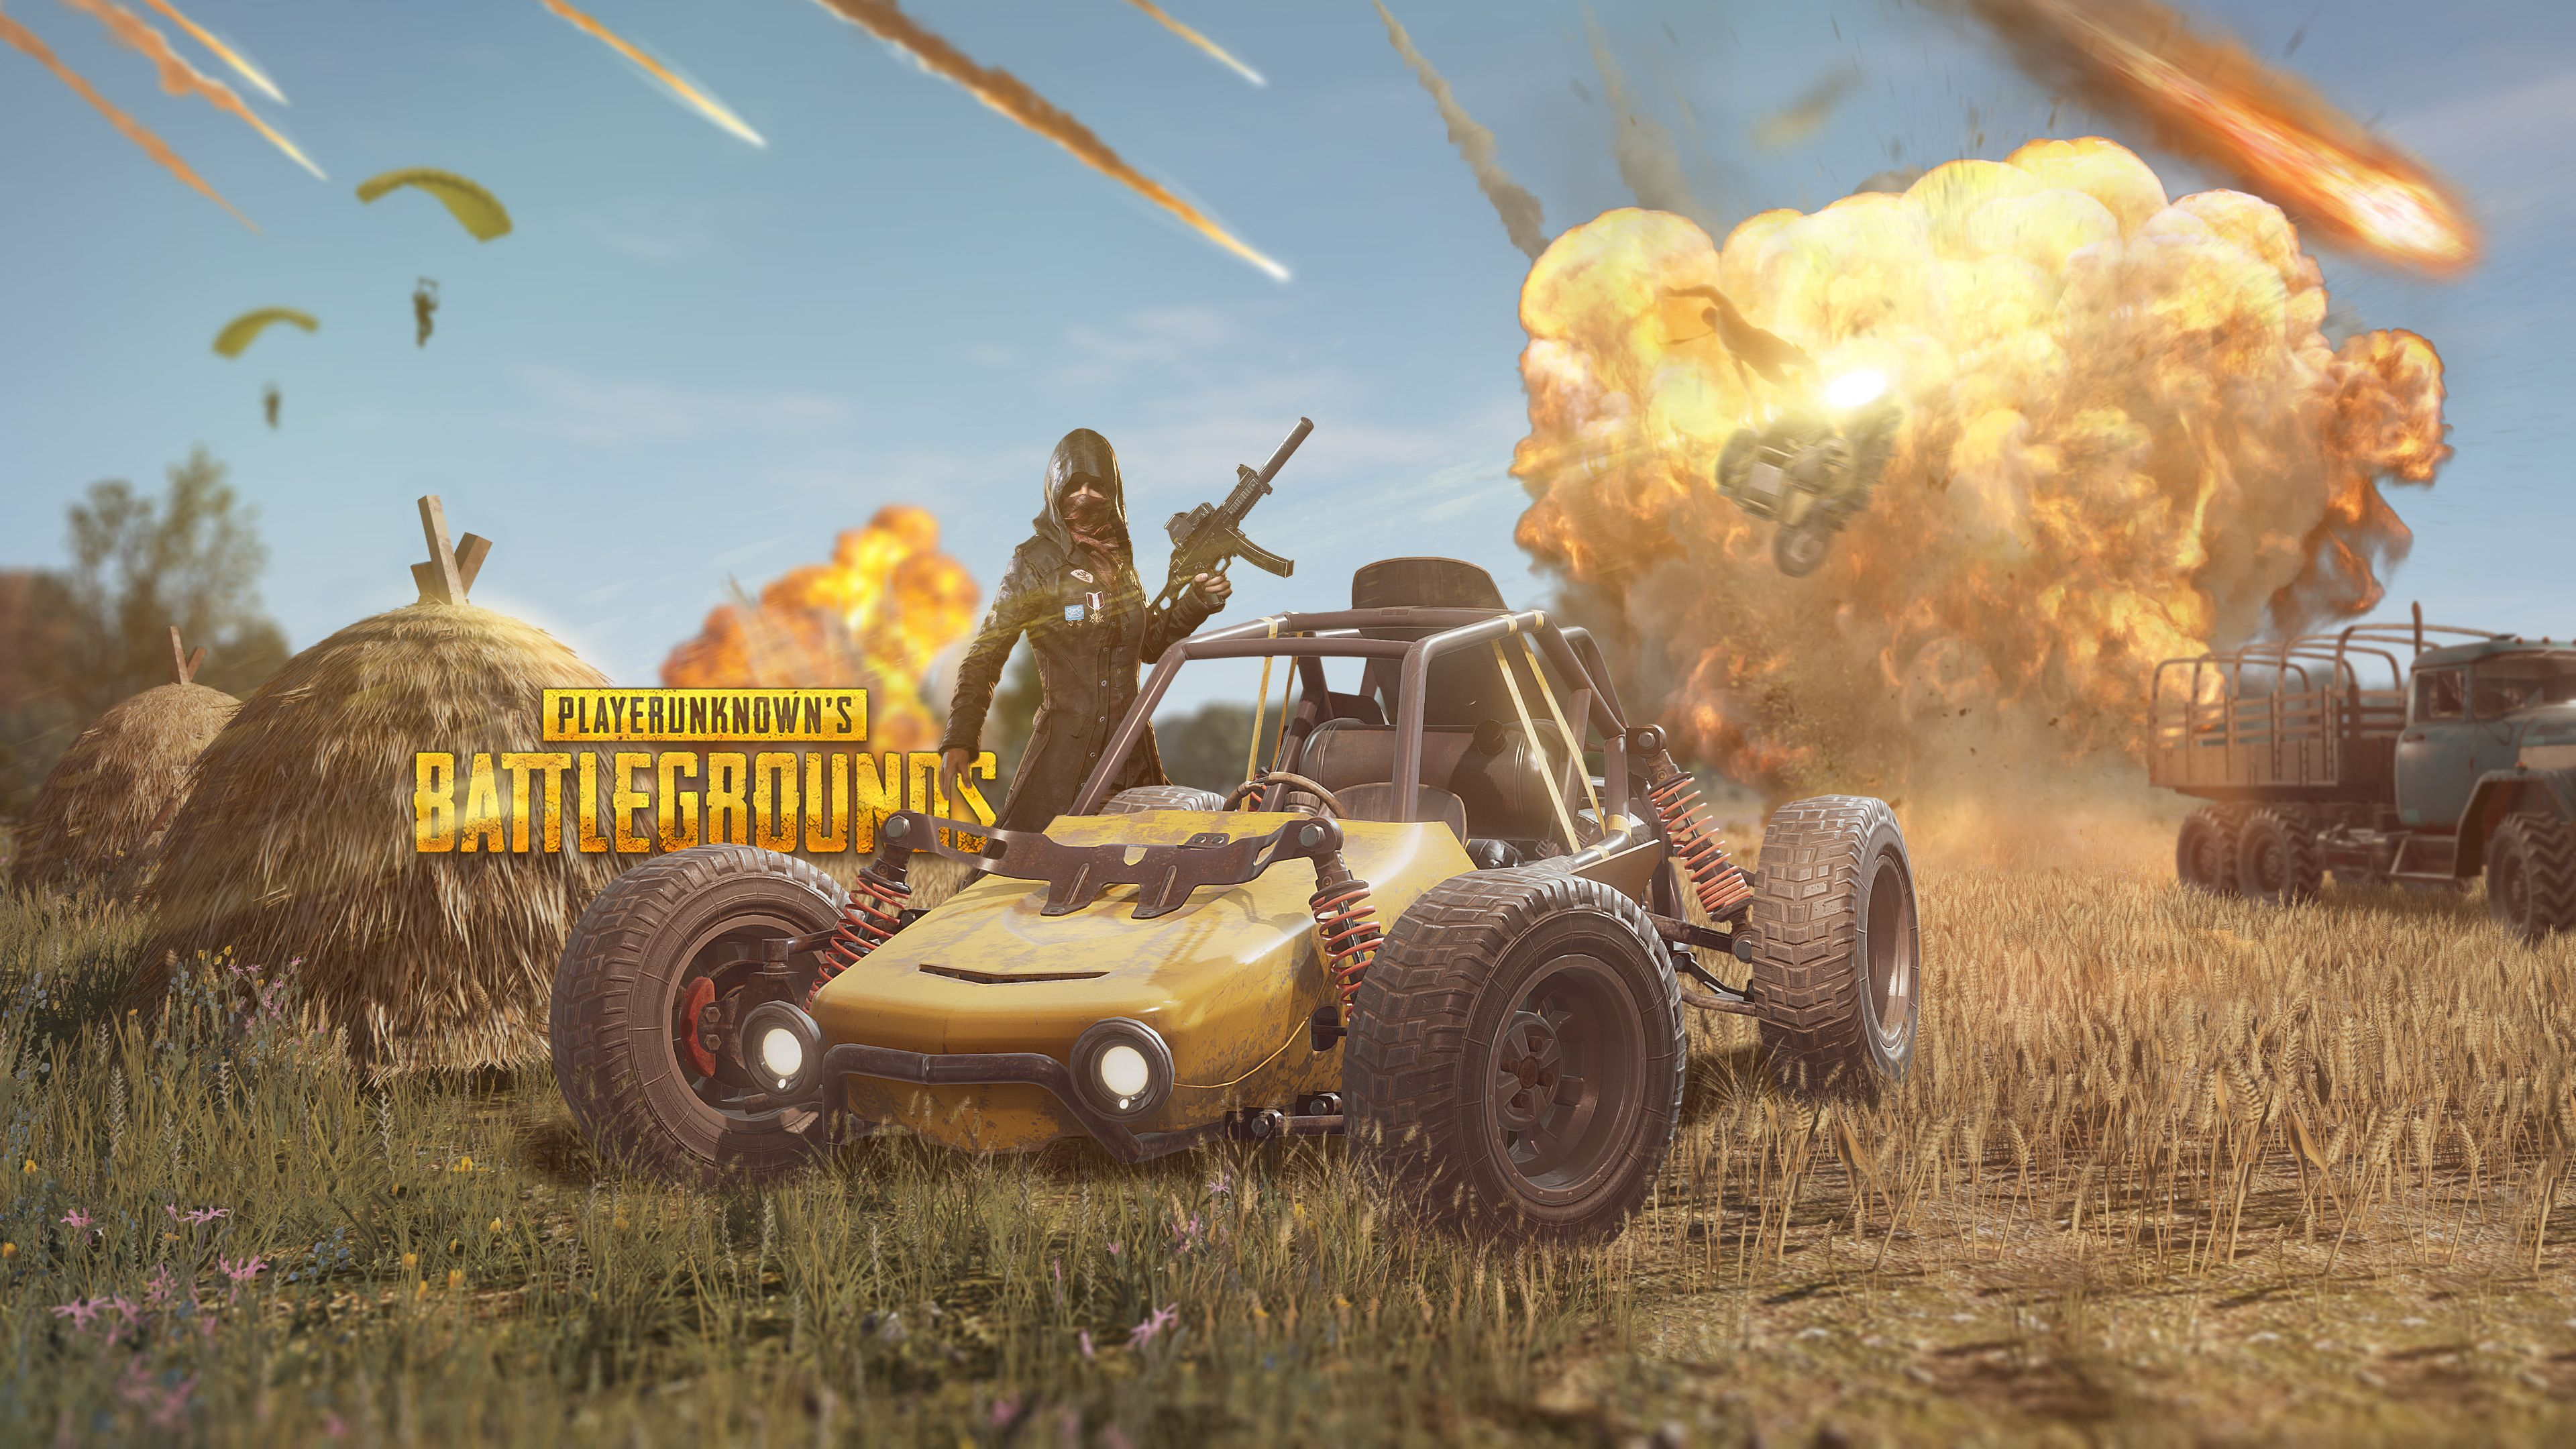 Pubg Wallpaper Phone: Pubg Wallpapers Widescreen On Wallpaper 1080p HD